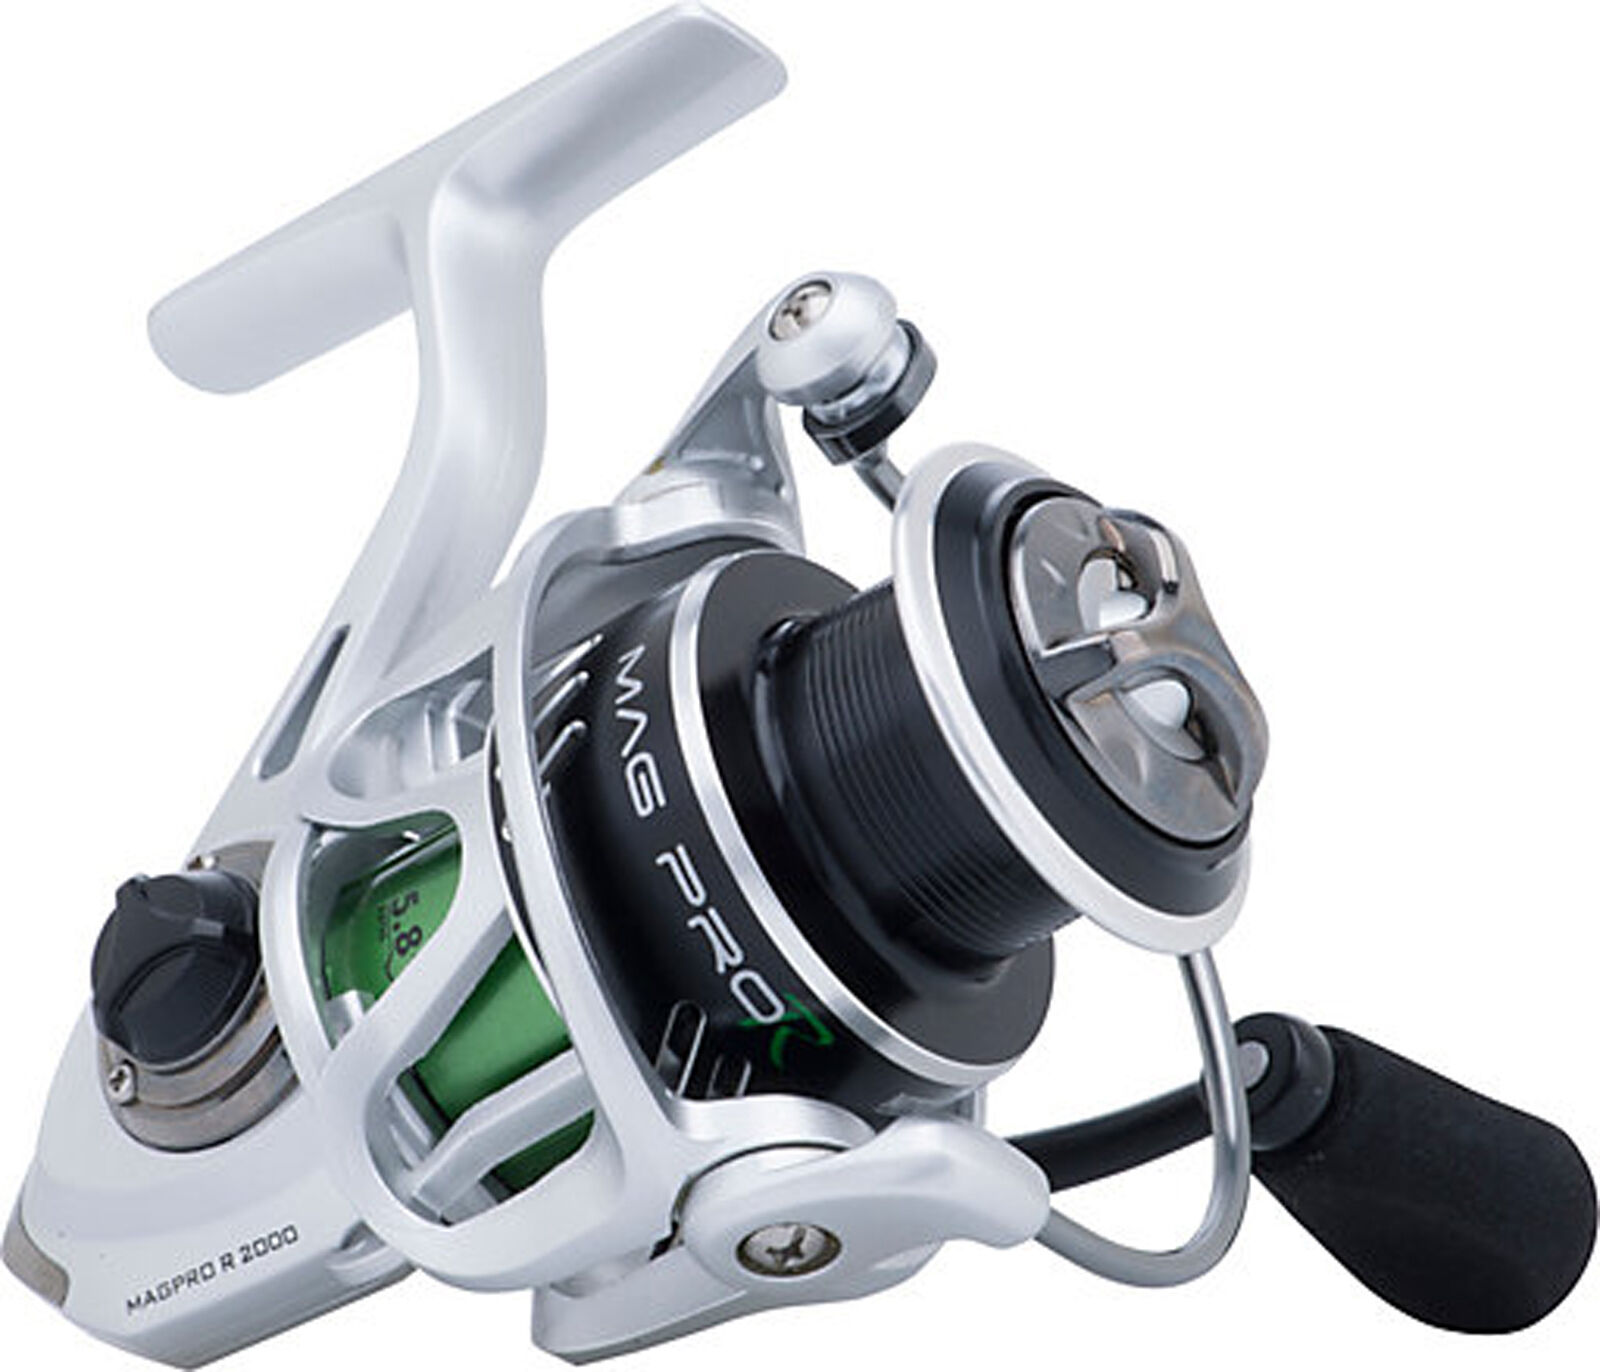 Mitchell Mag-Pro R Front Drag Fishing Reel4 Game Größes1000-4000Spinning Game Reel4 Match 228d1d